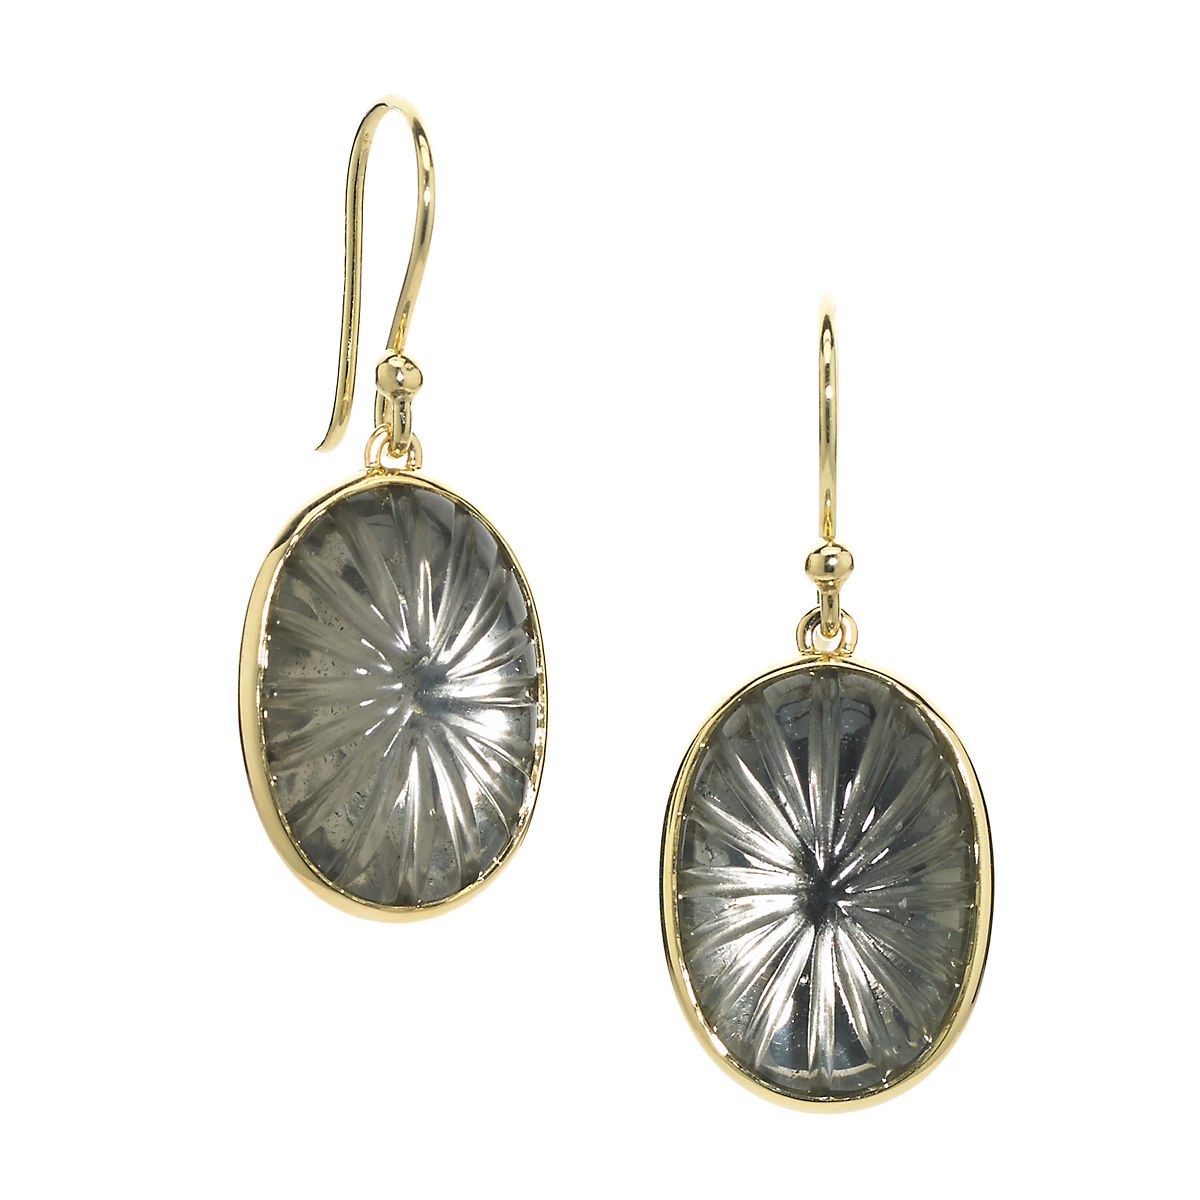 Elizabeth Showers Pyrite & Quartz Soleil Drop Earrings